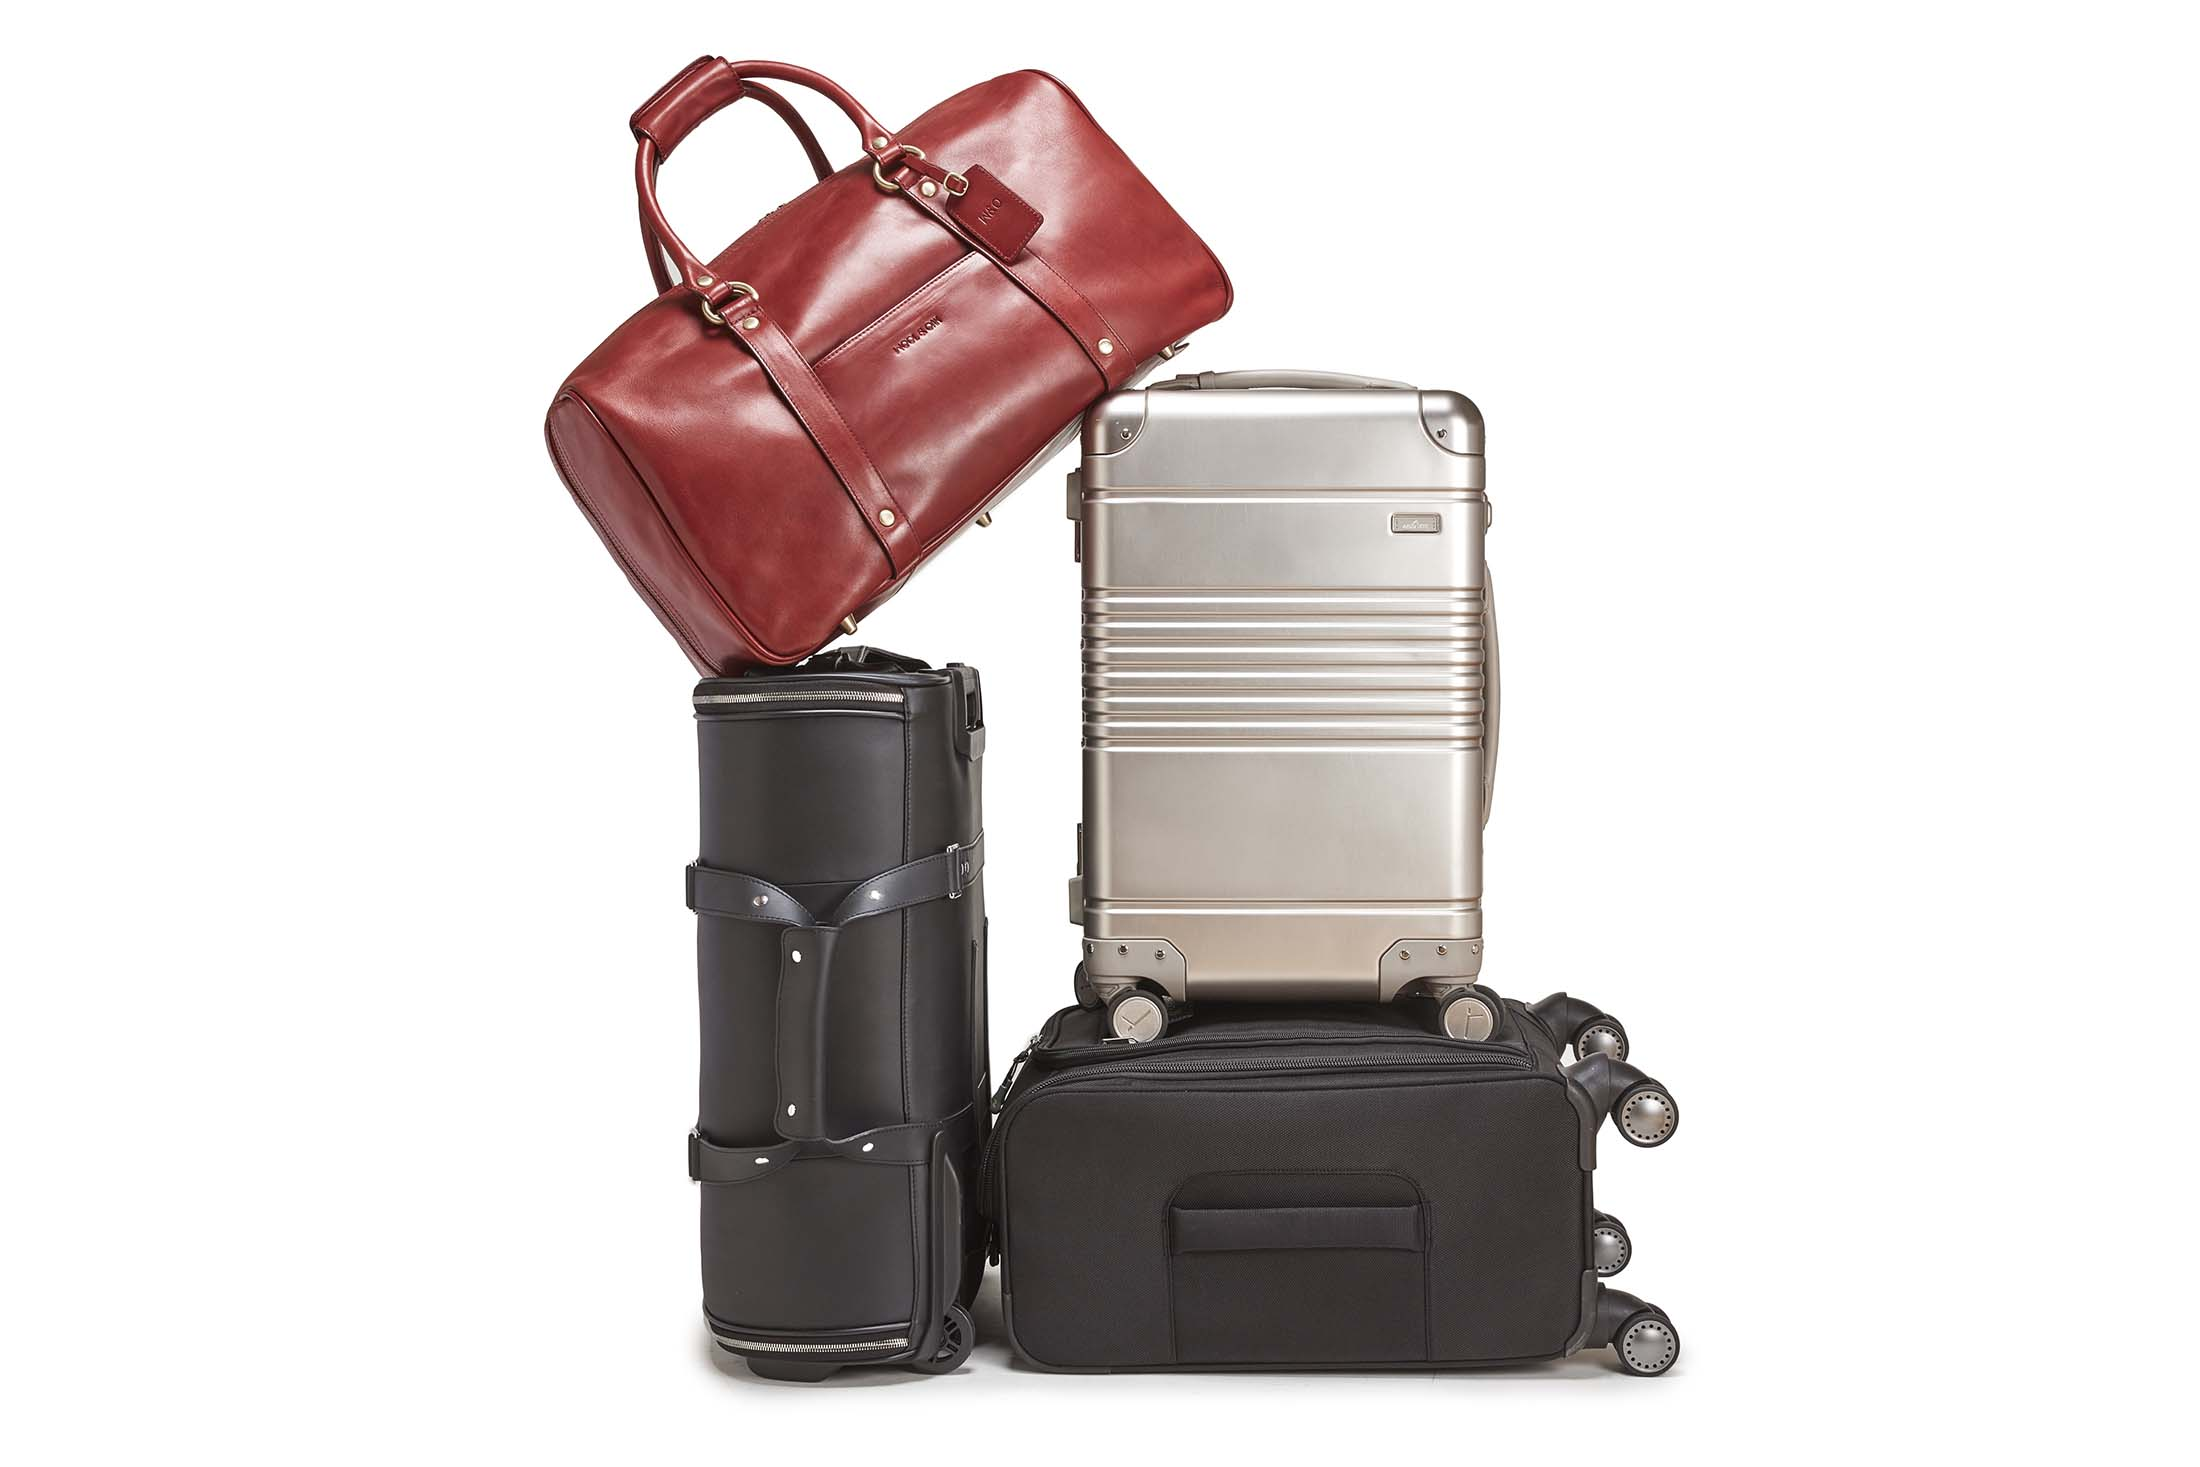 Suitcases To Help You Pack Better Travel Easier Arlo Skye Vocier D Island Shoes Slip On Zipper Wrinkle Leather Black Bloomberg